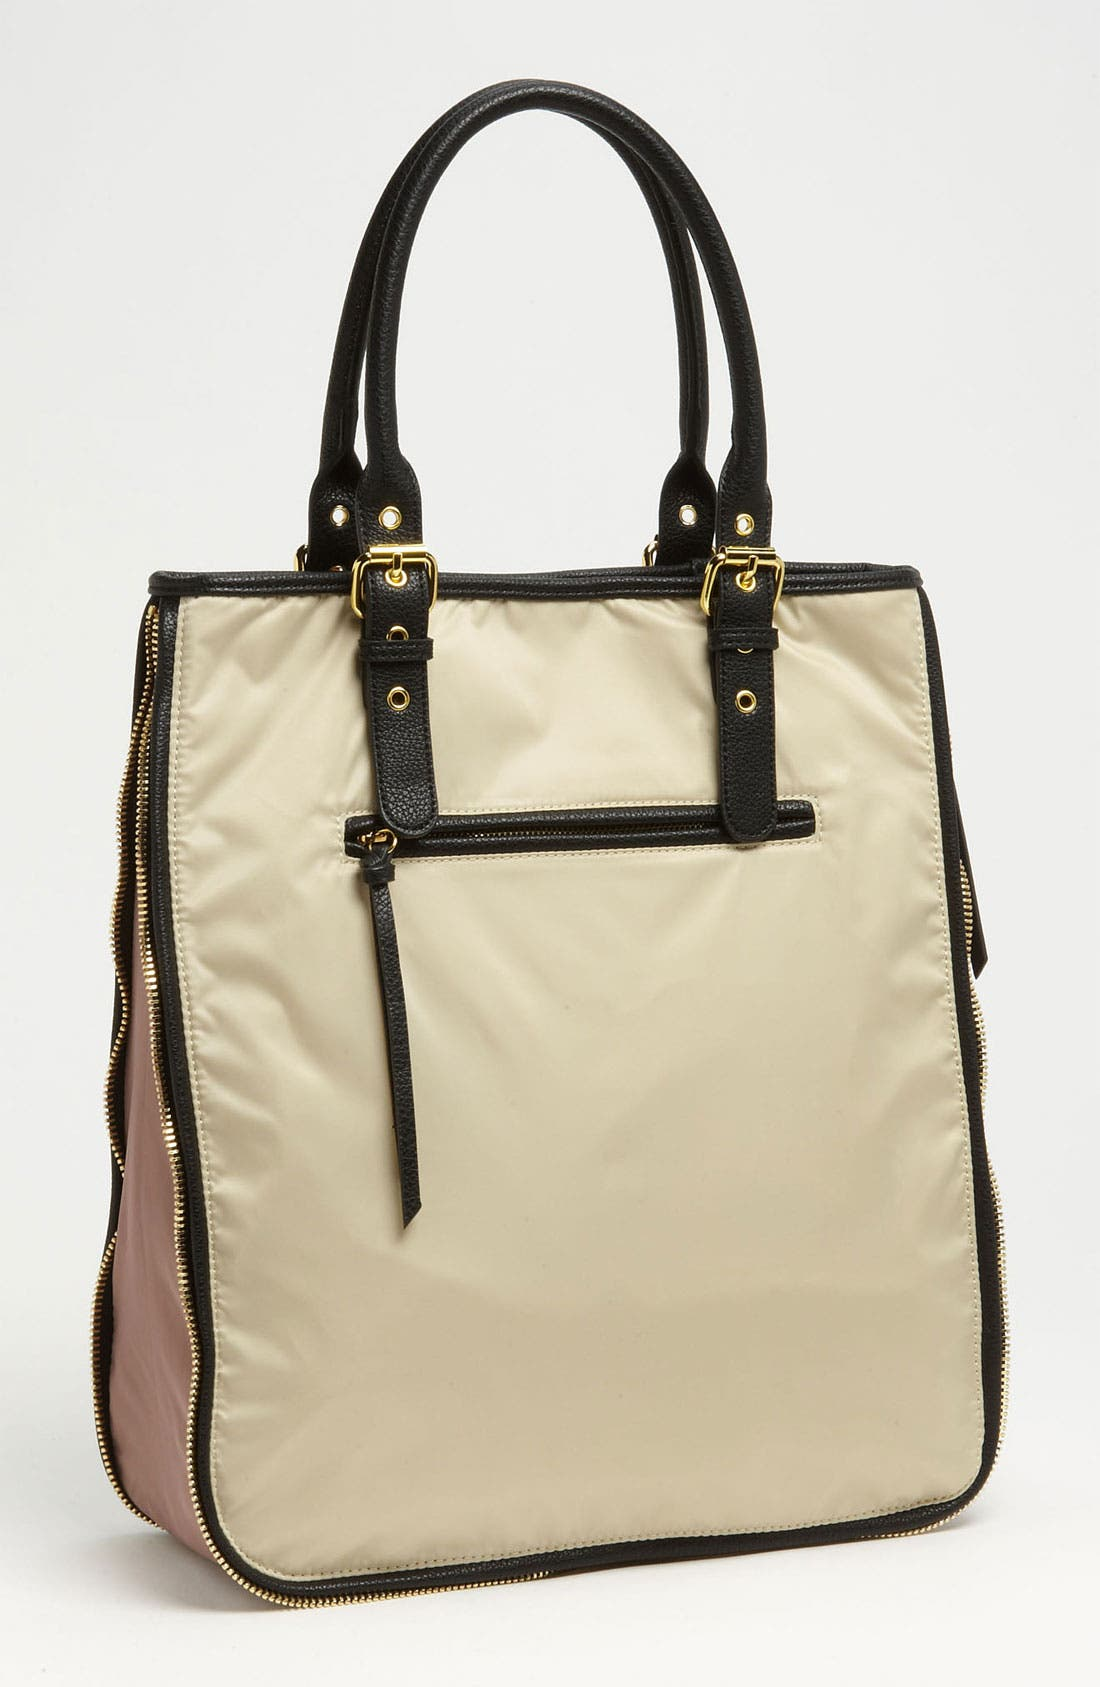 Alternate Image 1 Selected - Steven by Steve Madden 'Cool Breeze' Tote